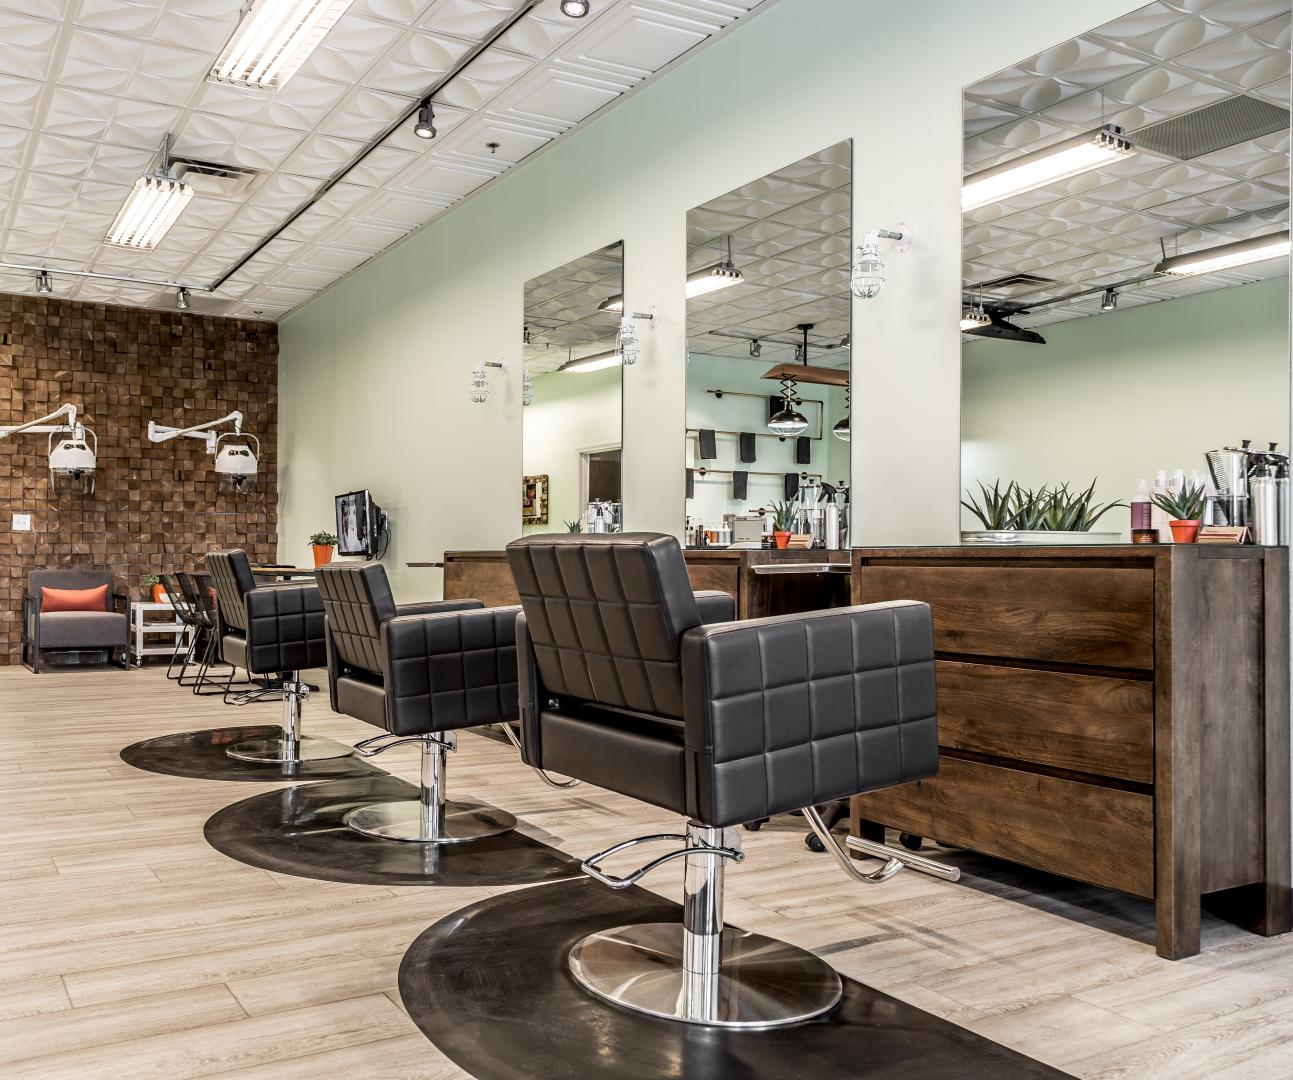 Salon Vegan Vegan Hair Salon In Las Vegas | Detox Salon: A Clean-air Salon